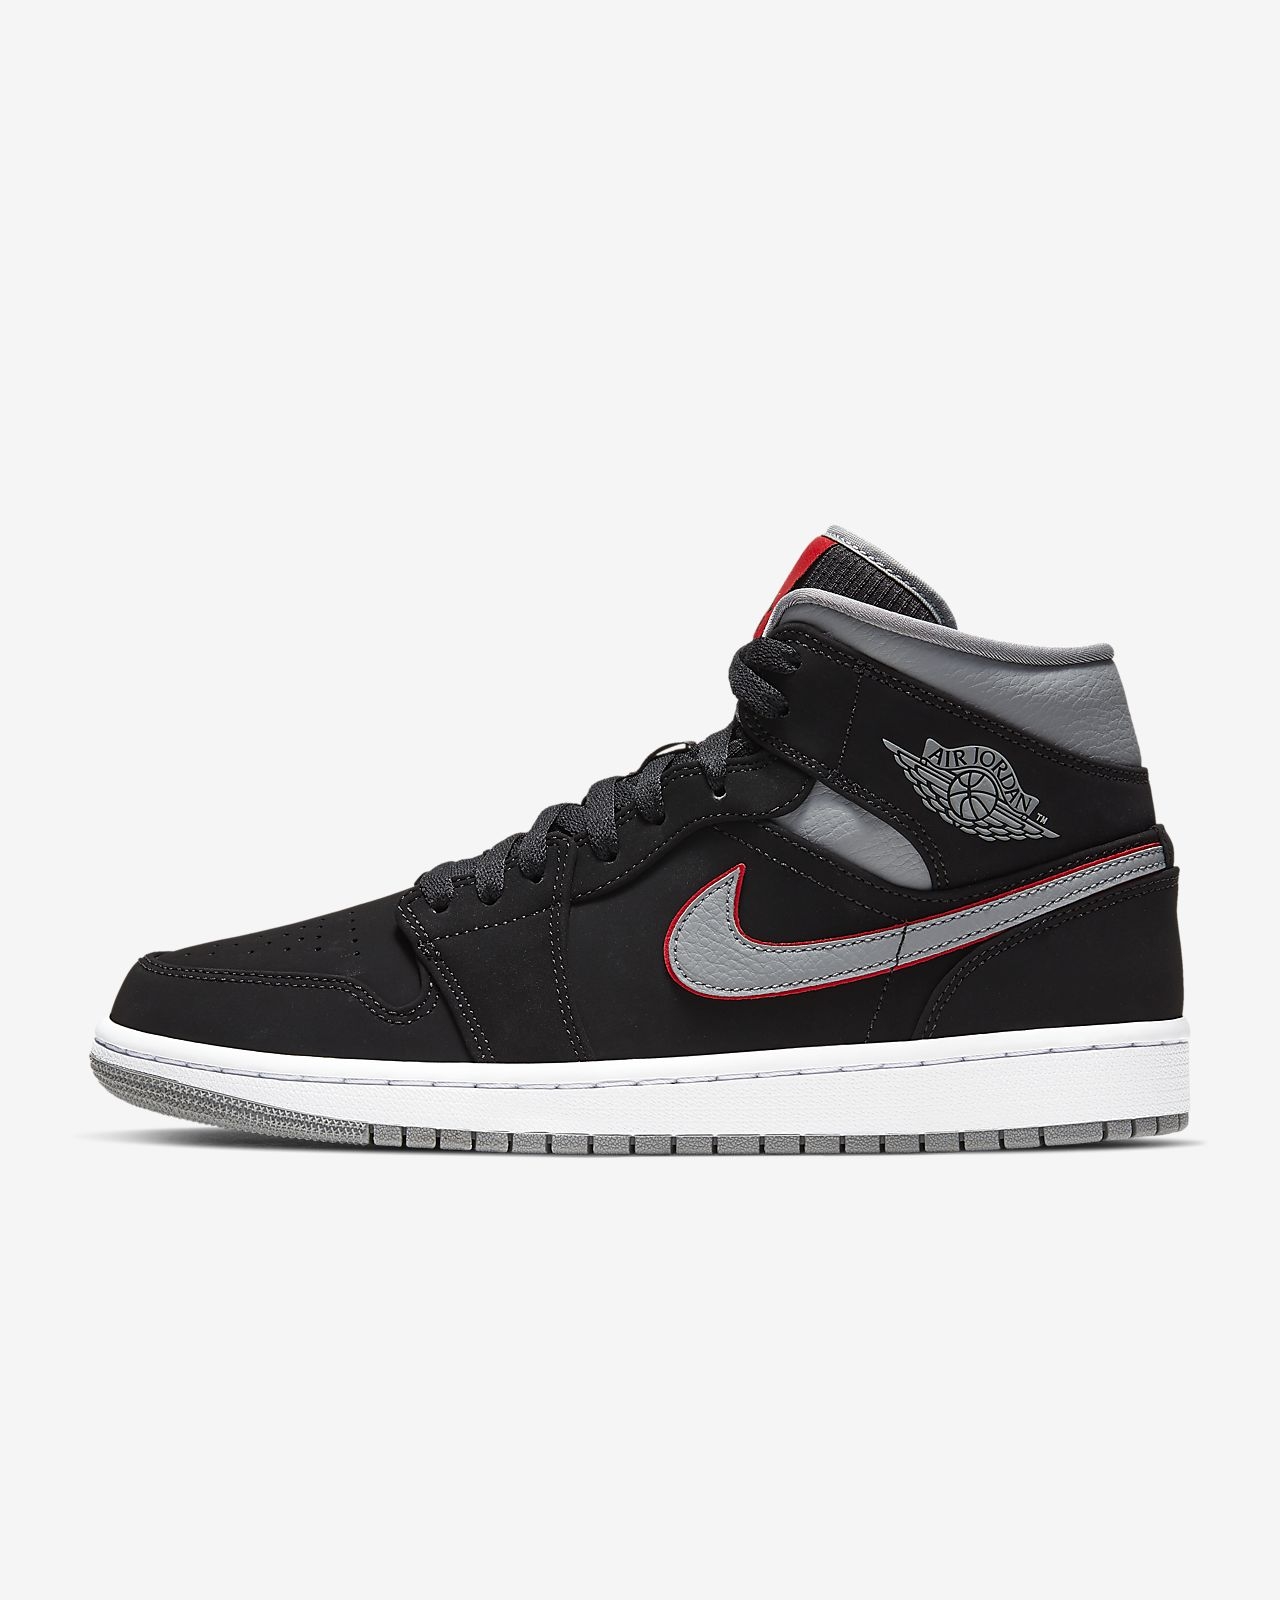 on sale 54243 a3140 Men s Shoe. Air Jordan 1 Mid